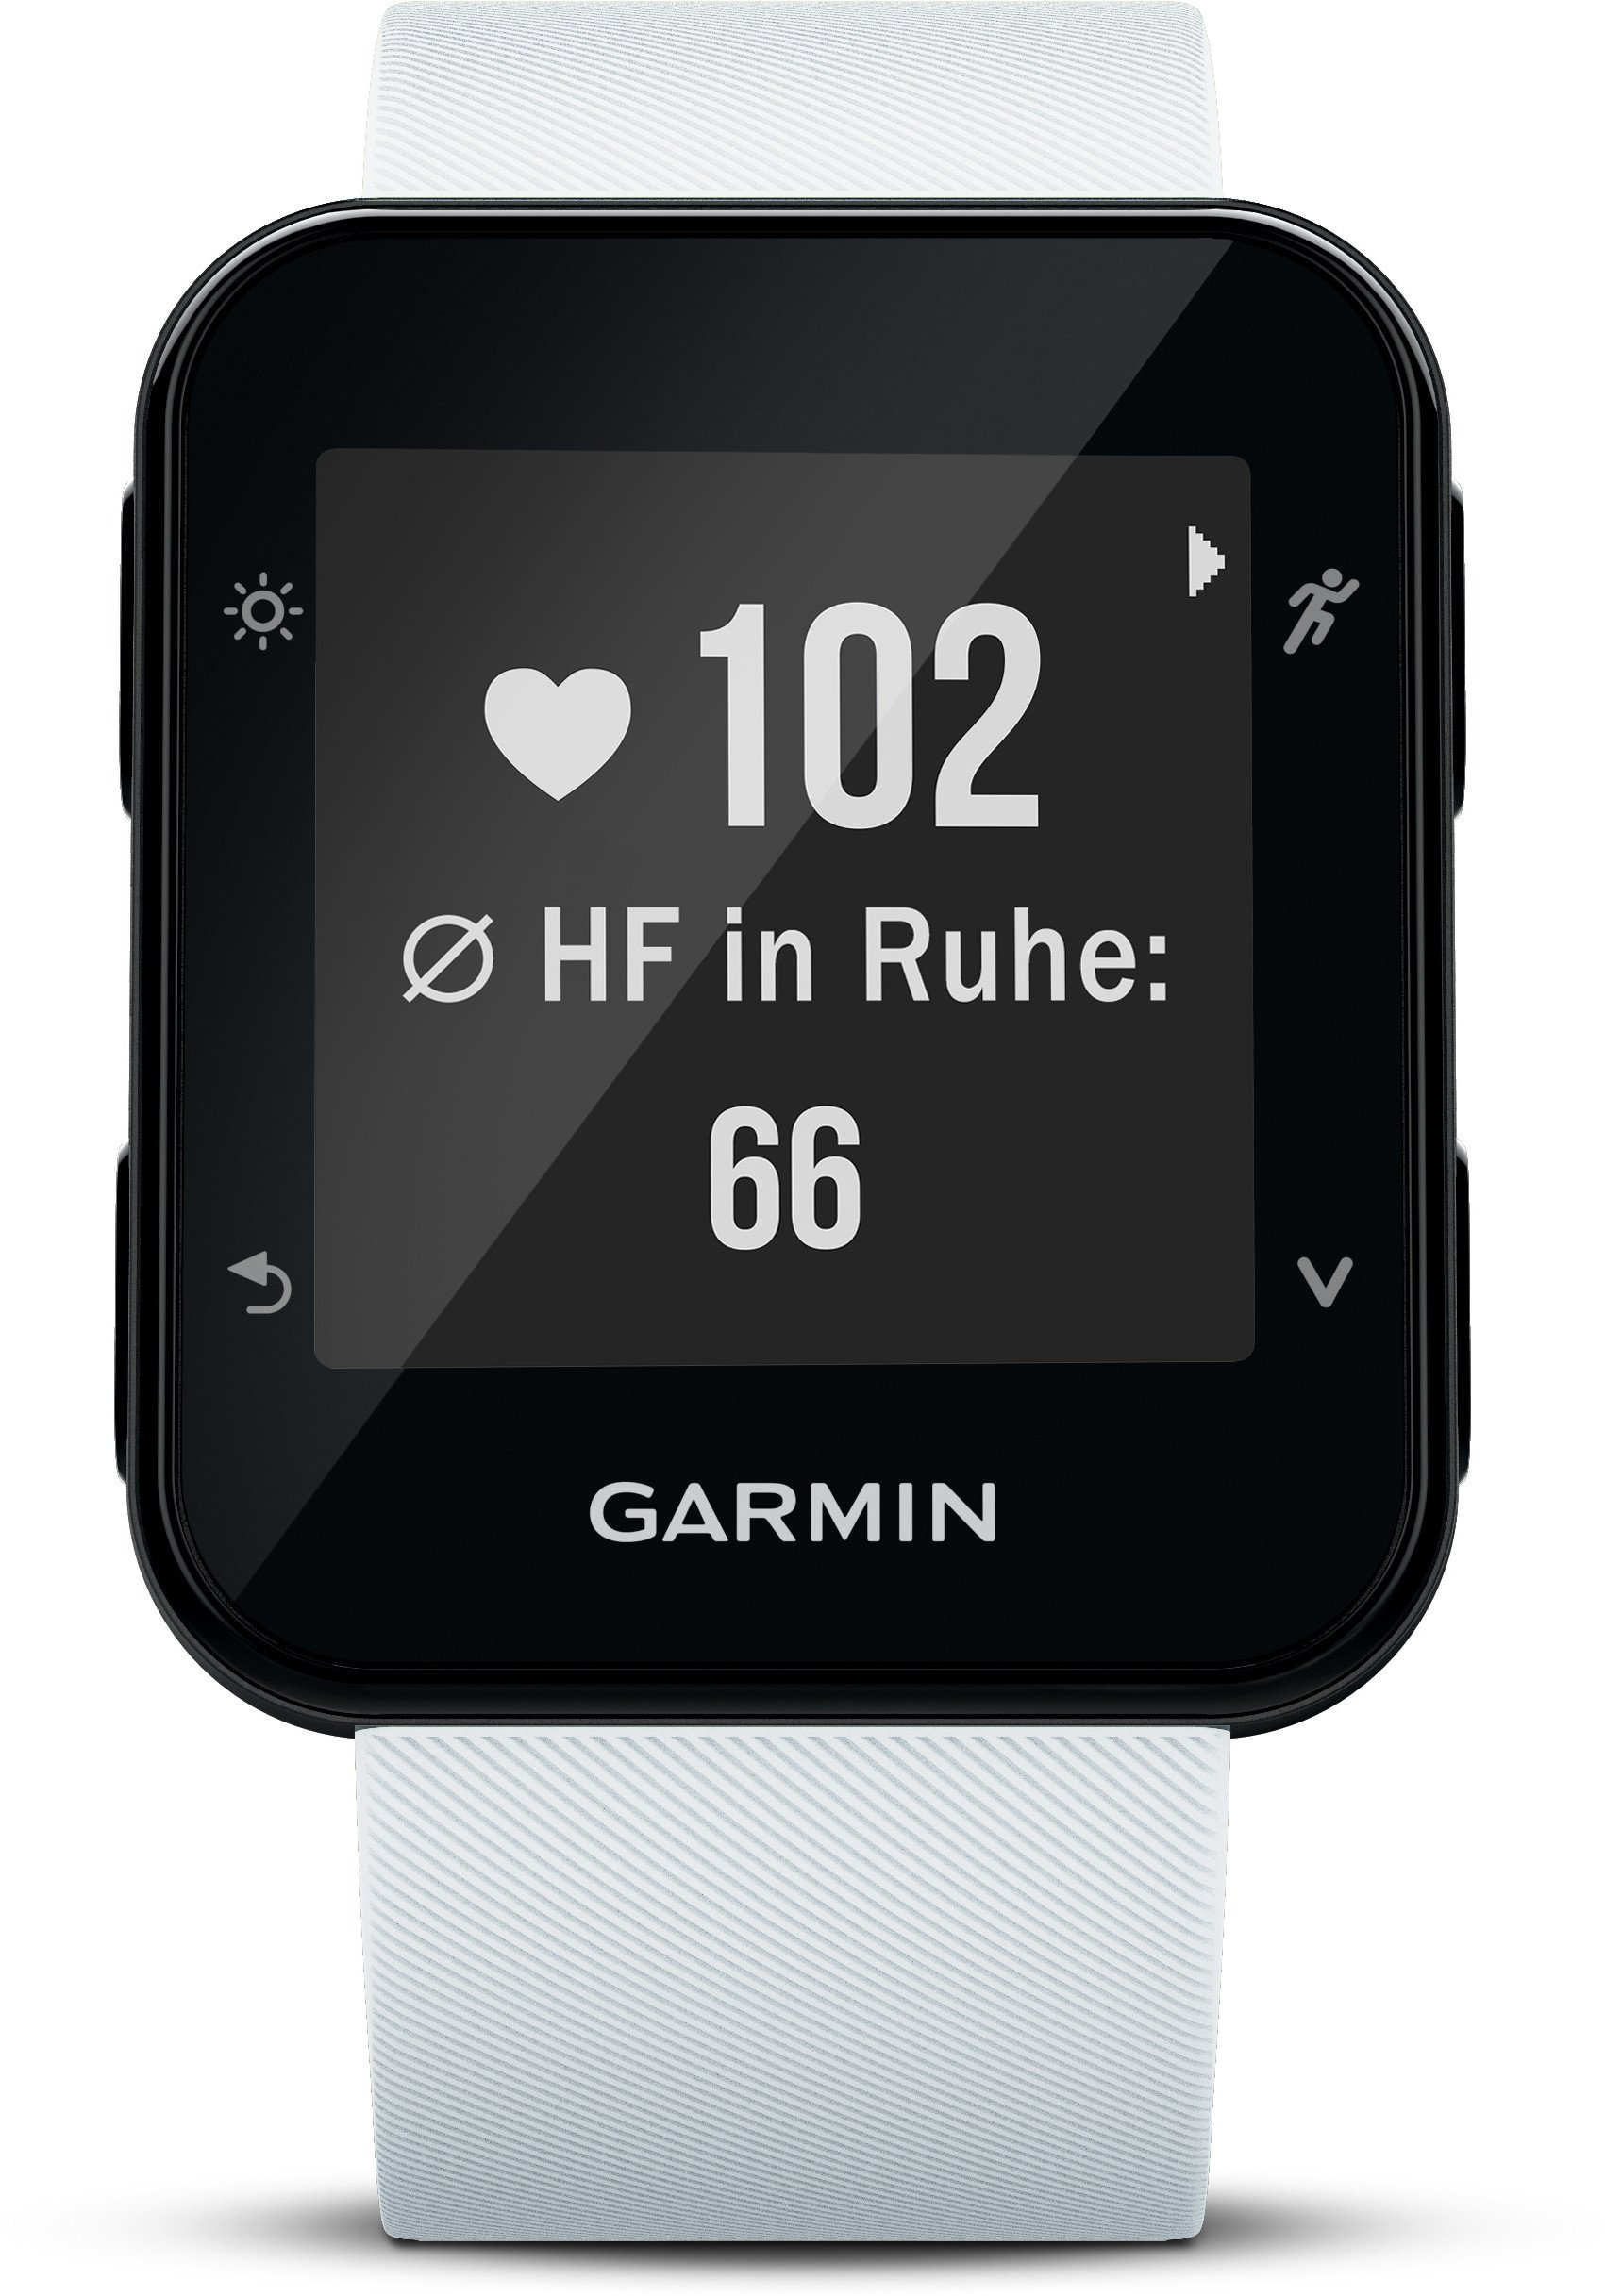 81aHJiym0sL - Garmin Forerunner 35 GPS Running Watch with Wrist-Based Heart Rate and Workouts,010-01689-12